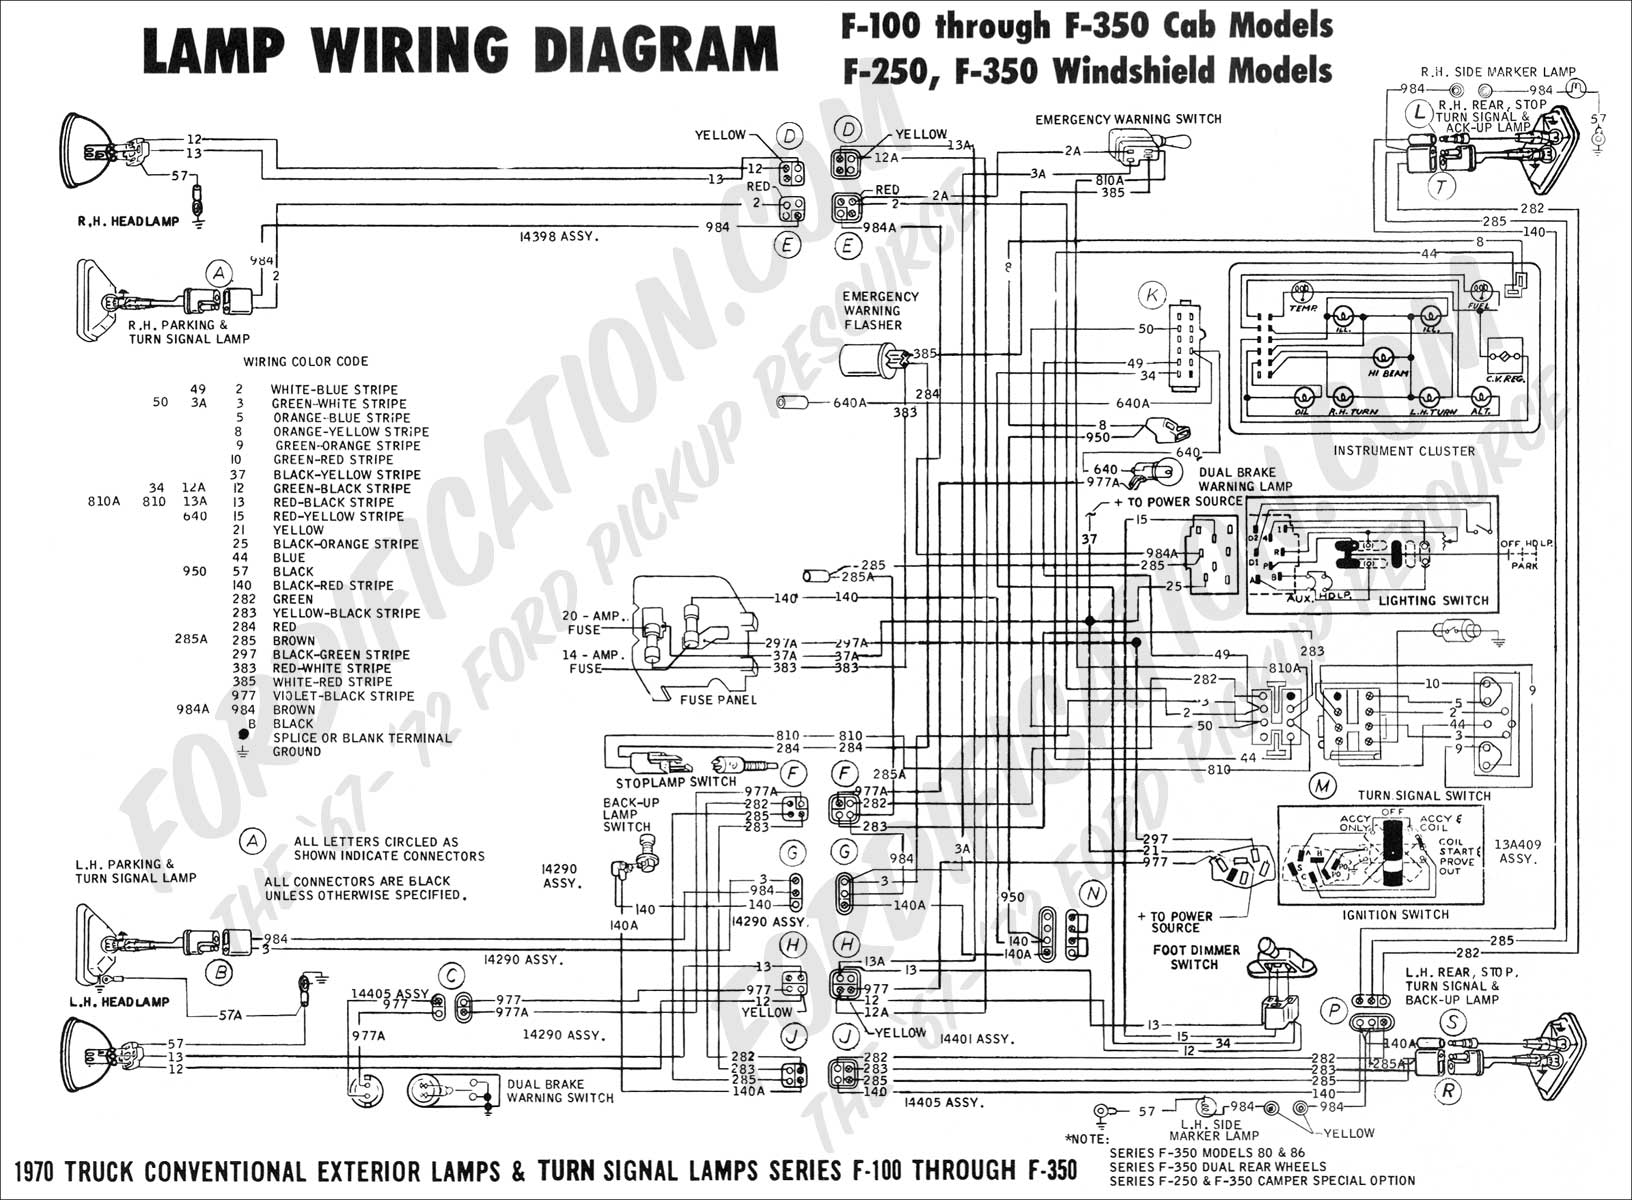 WRG-8908] 1999 Mack Truck Fuse Panel Diagram on 2001 dodge truck wiring diagram, mack fuse box diagram, 2006 international 4300 truck wiring diagram, eaton fuller transmission parts diagram,